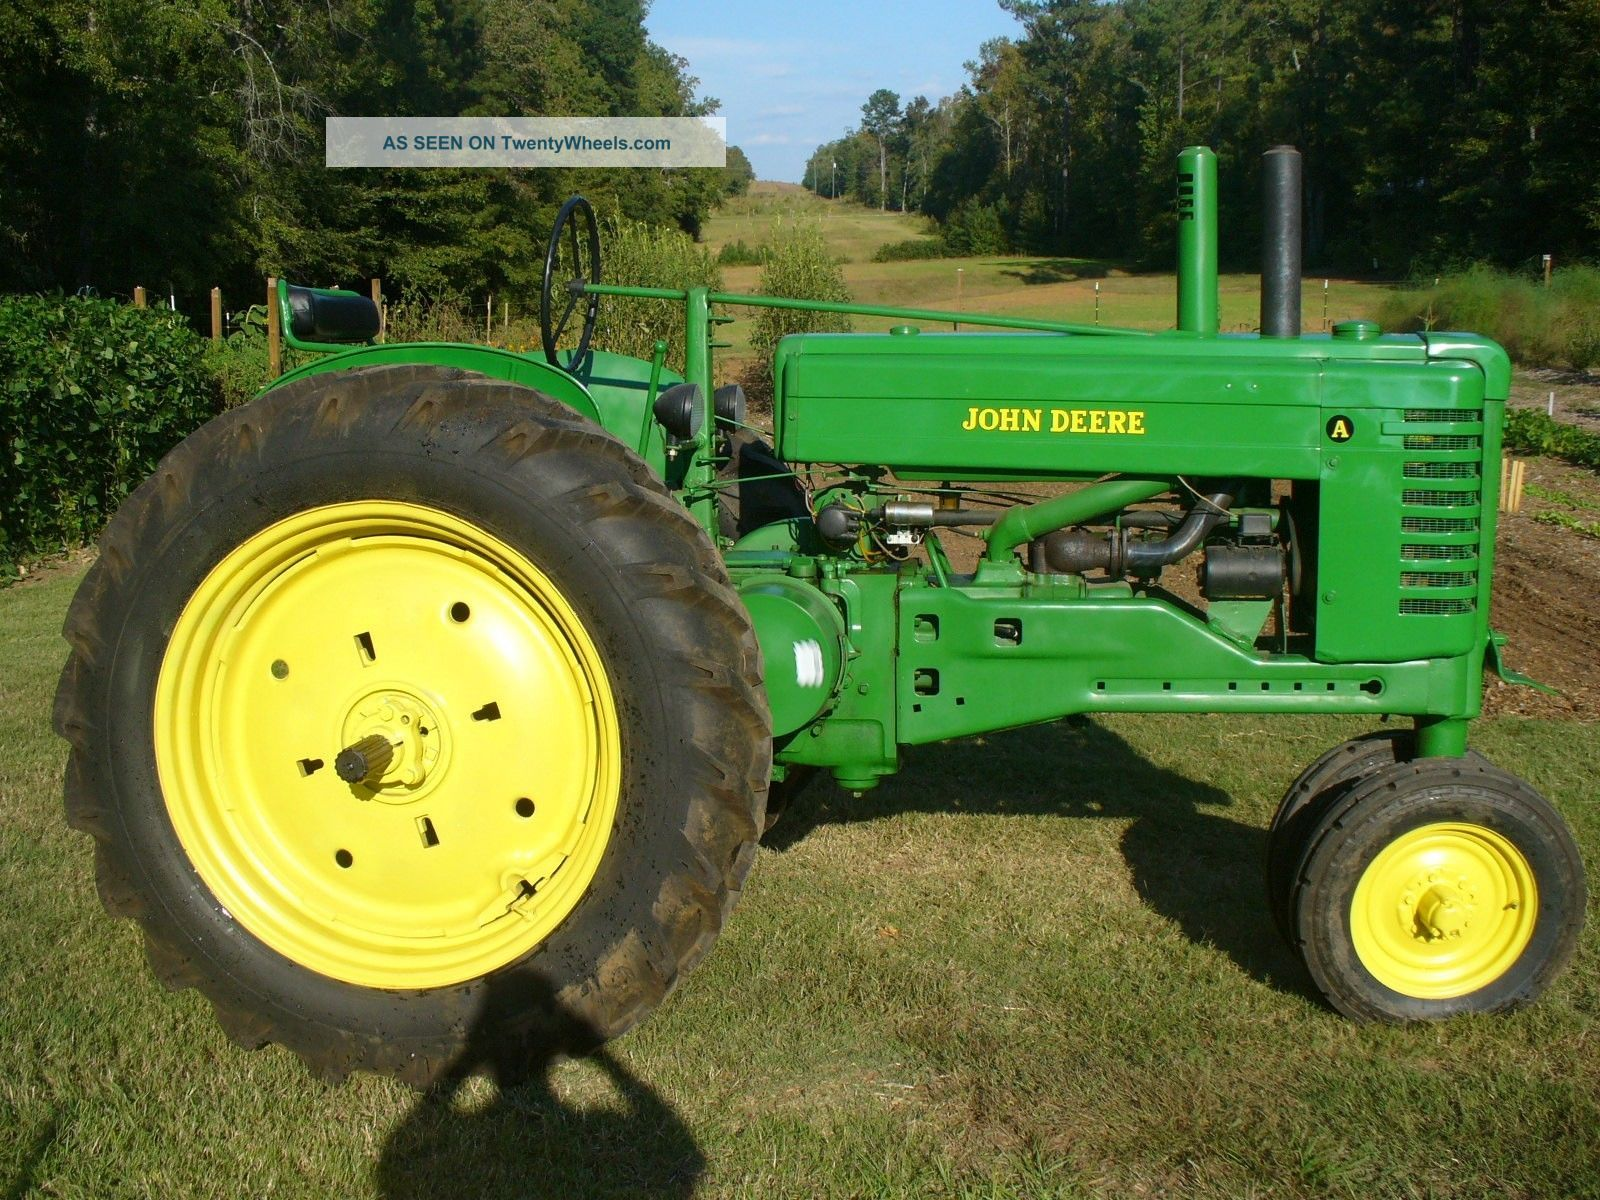 vintage john deere tractors - Video Search Engine at ...